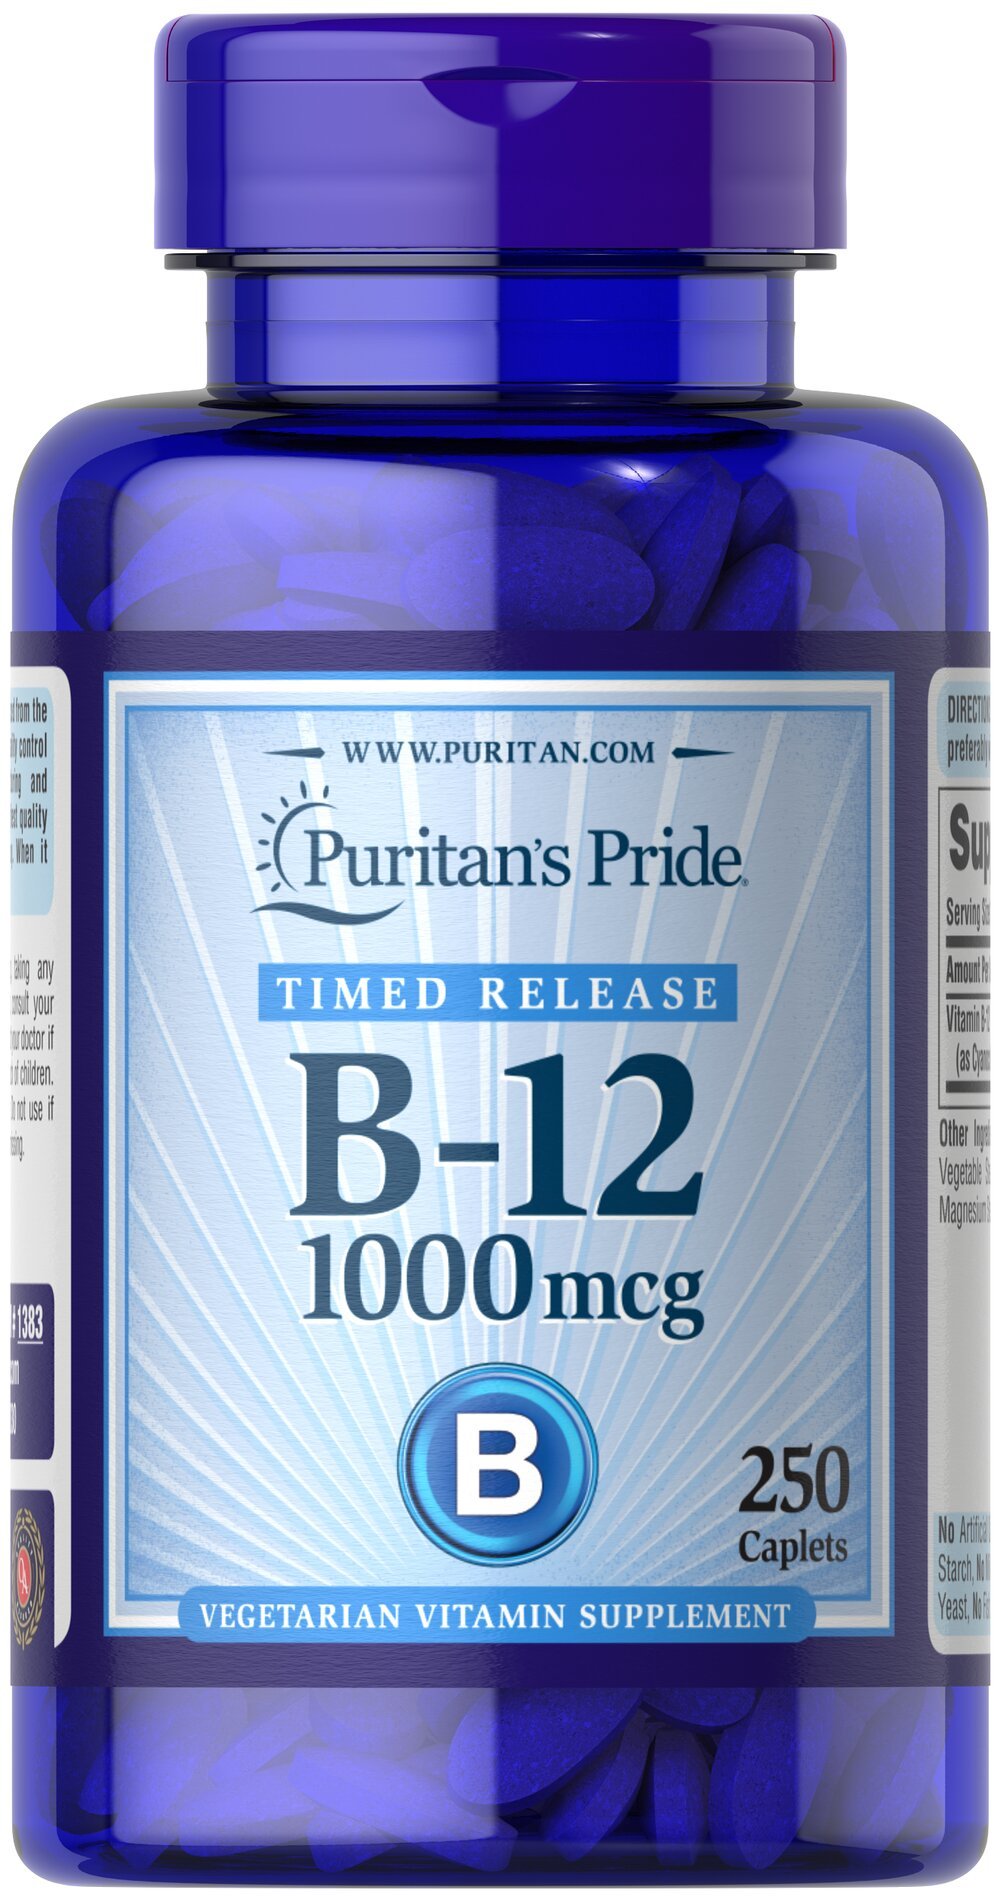 Vitamin B-12 1000 mcg Timed Release <p>Our B-12 Ener-B® formula delivers essential <strong>B vitamins</strong> for energy metabolism in the body.**<strong>Vitamin B-12</strong> is also essential for the normal formation of blood cells, contributes to the health of the nervous system, and helps maintain circulatory health.** Good oral health is linked to cardiovascular health. Vitamin B12 is a water-soluble vitamin which maintains circulatory health and helps ke